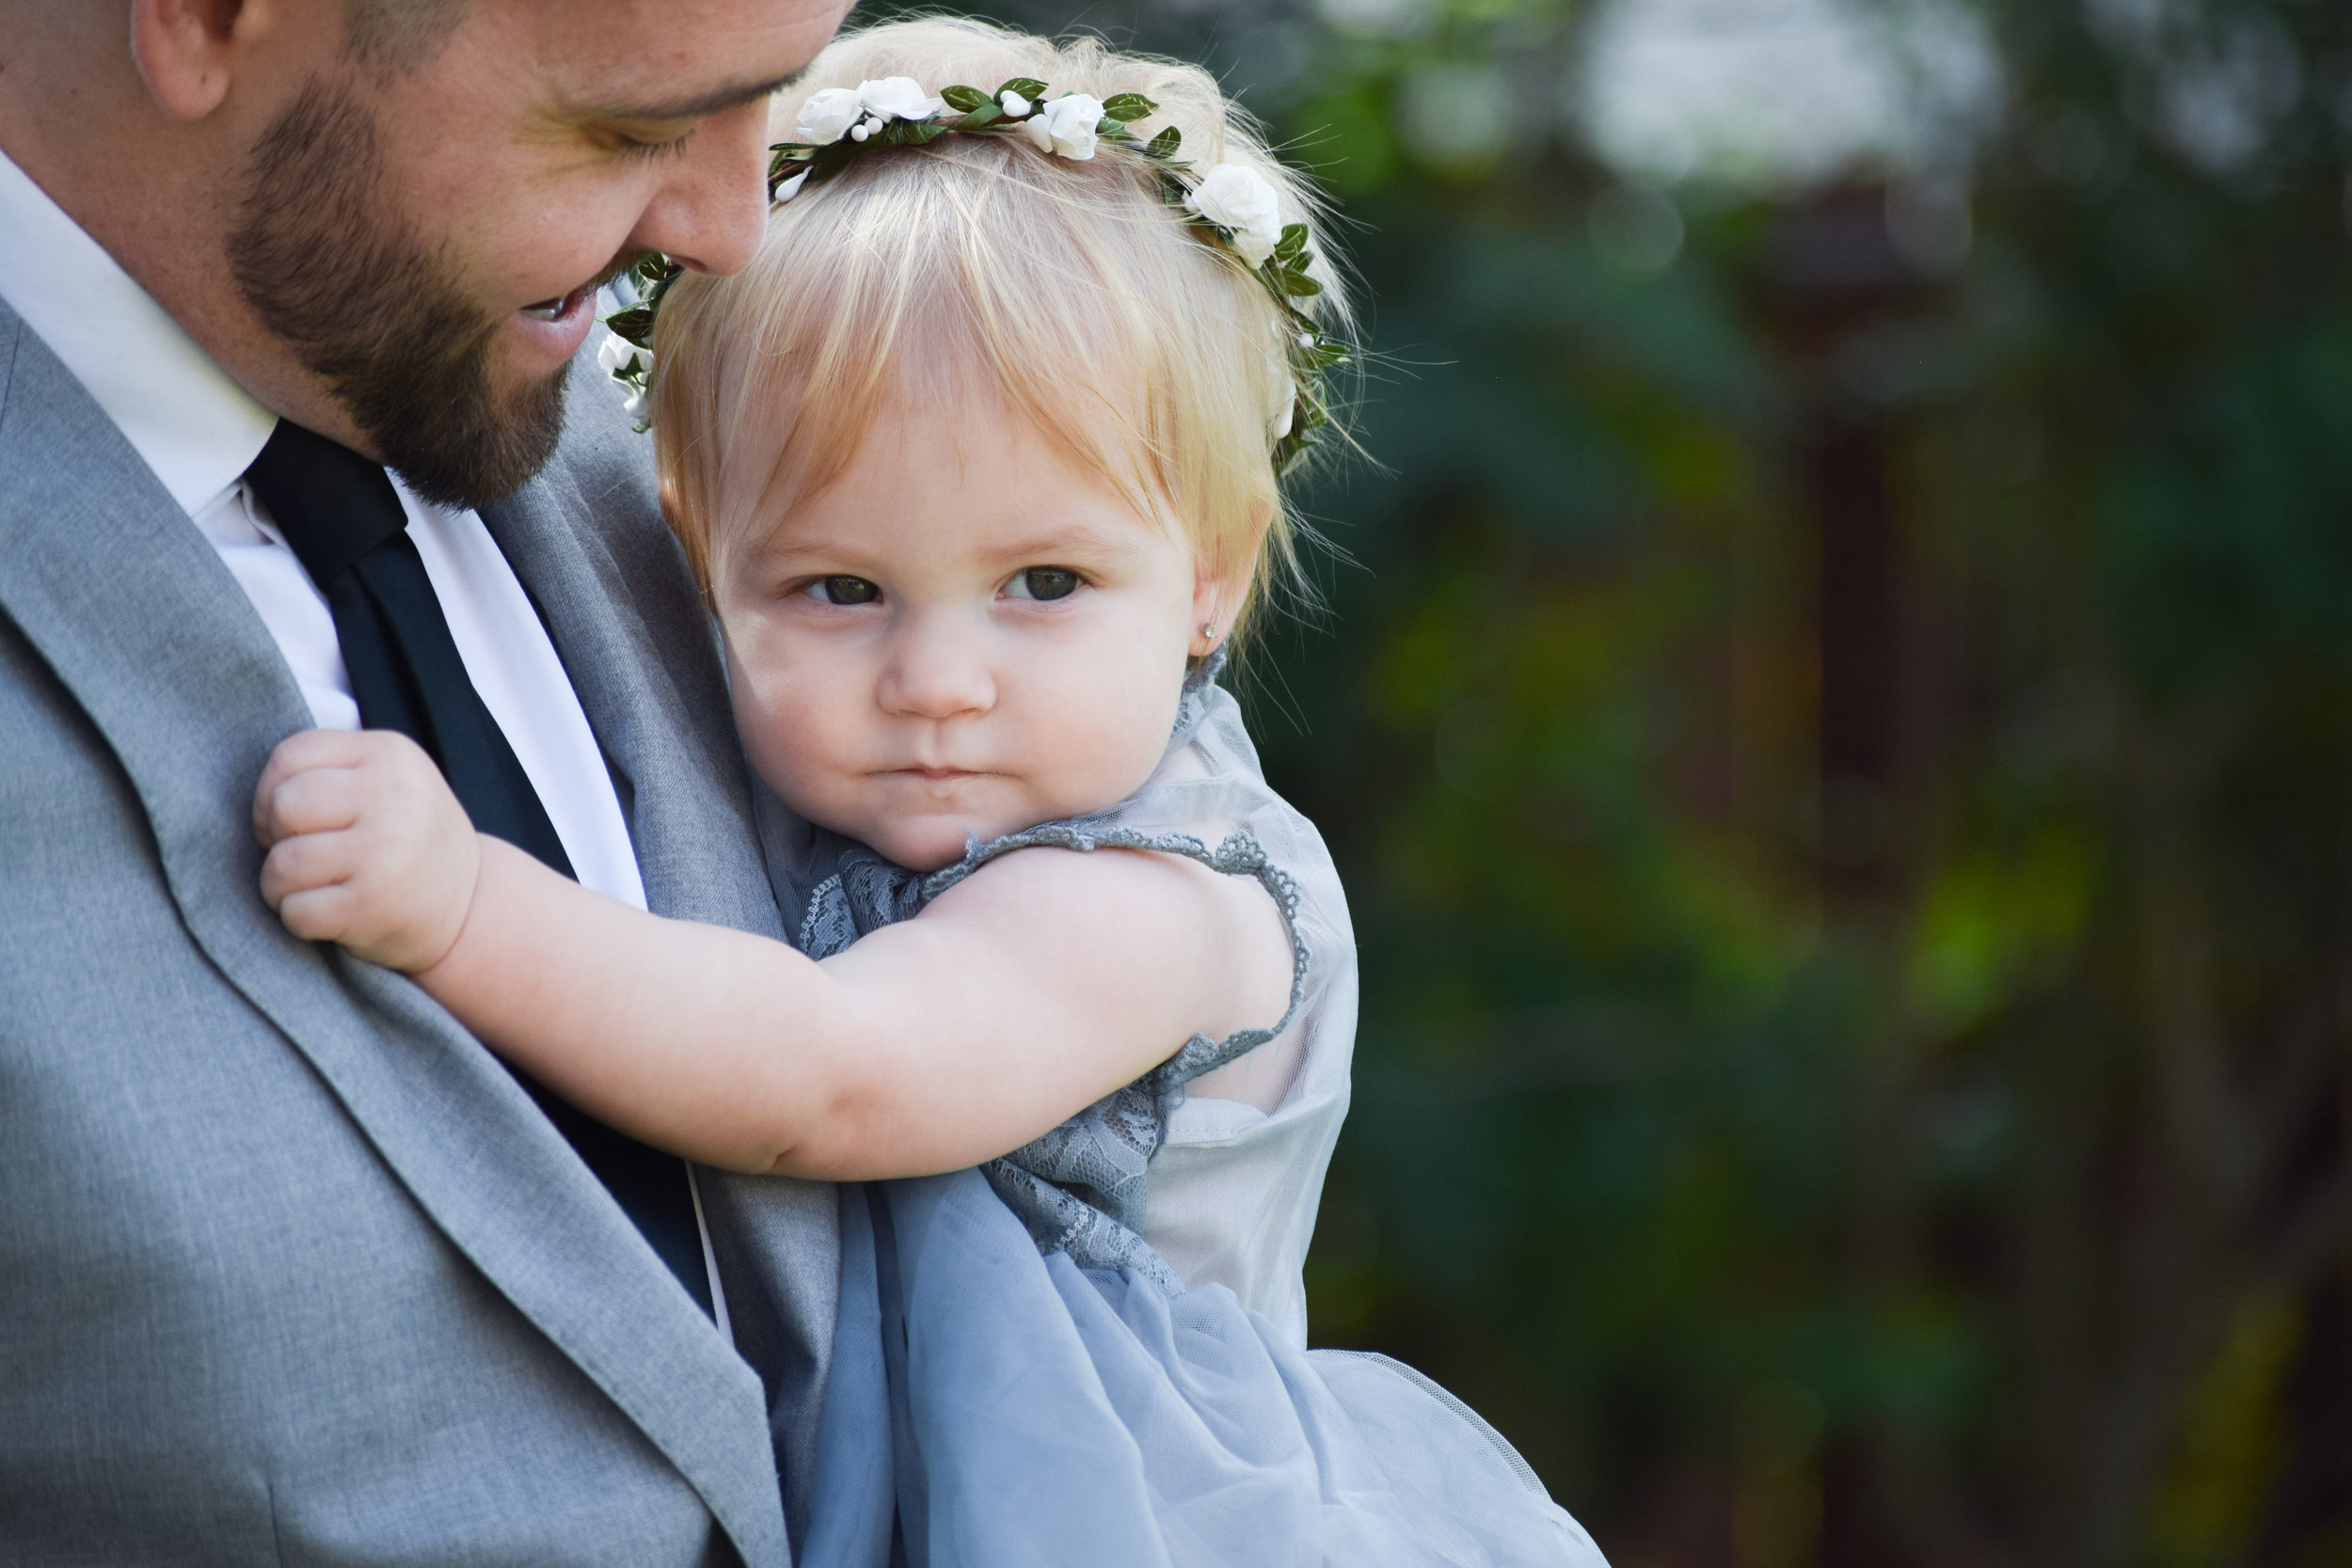 Grey lace + Chiffon Flower Girl Dress - The Hair Bow Company